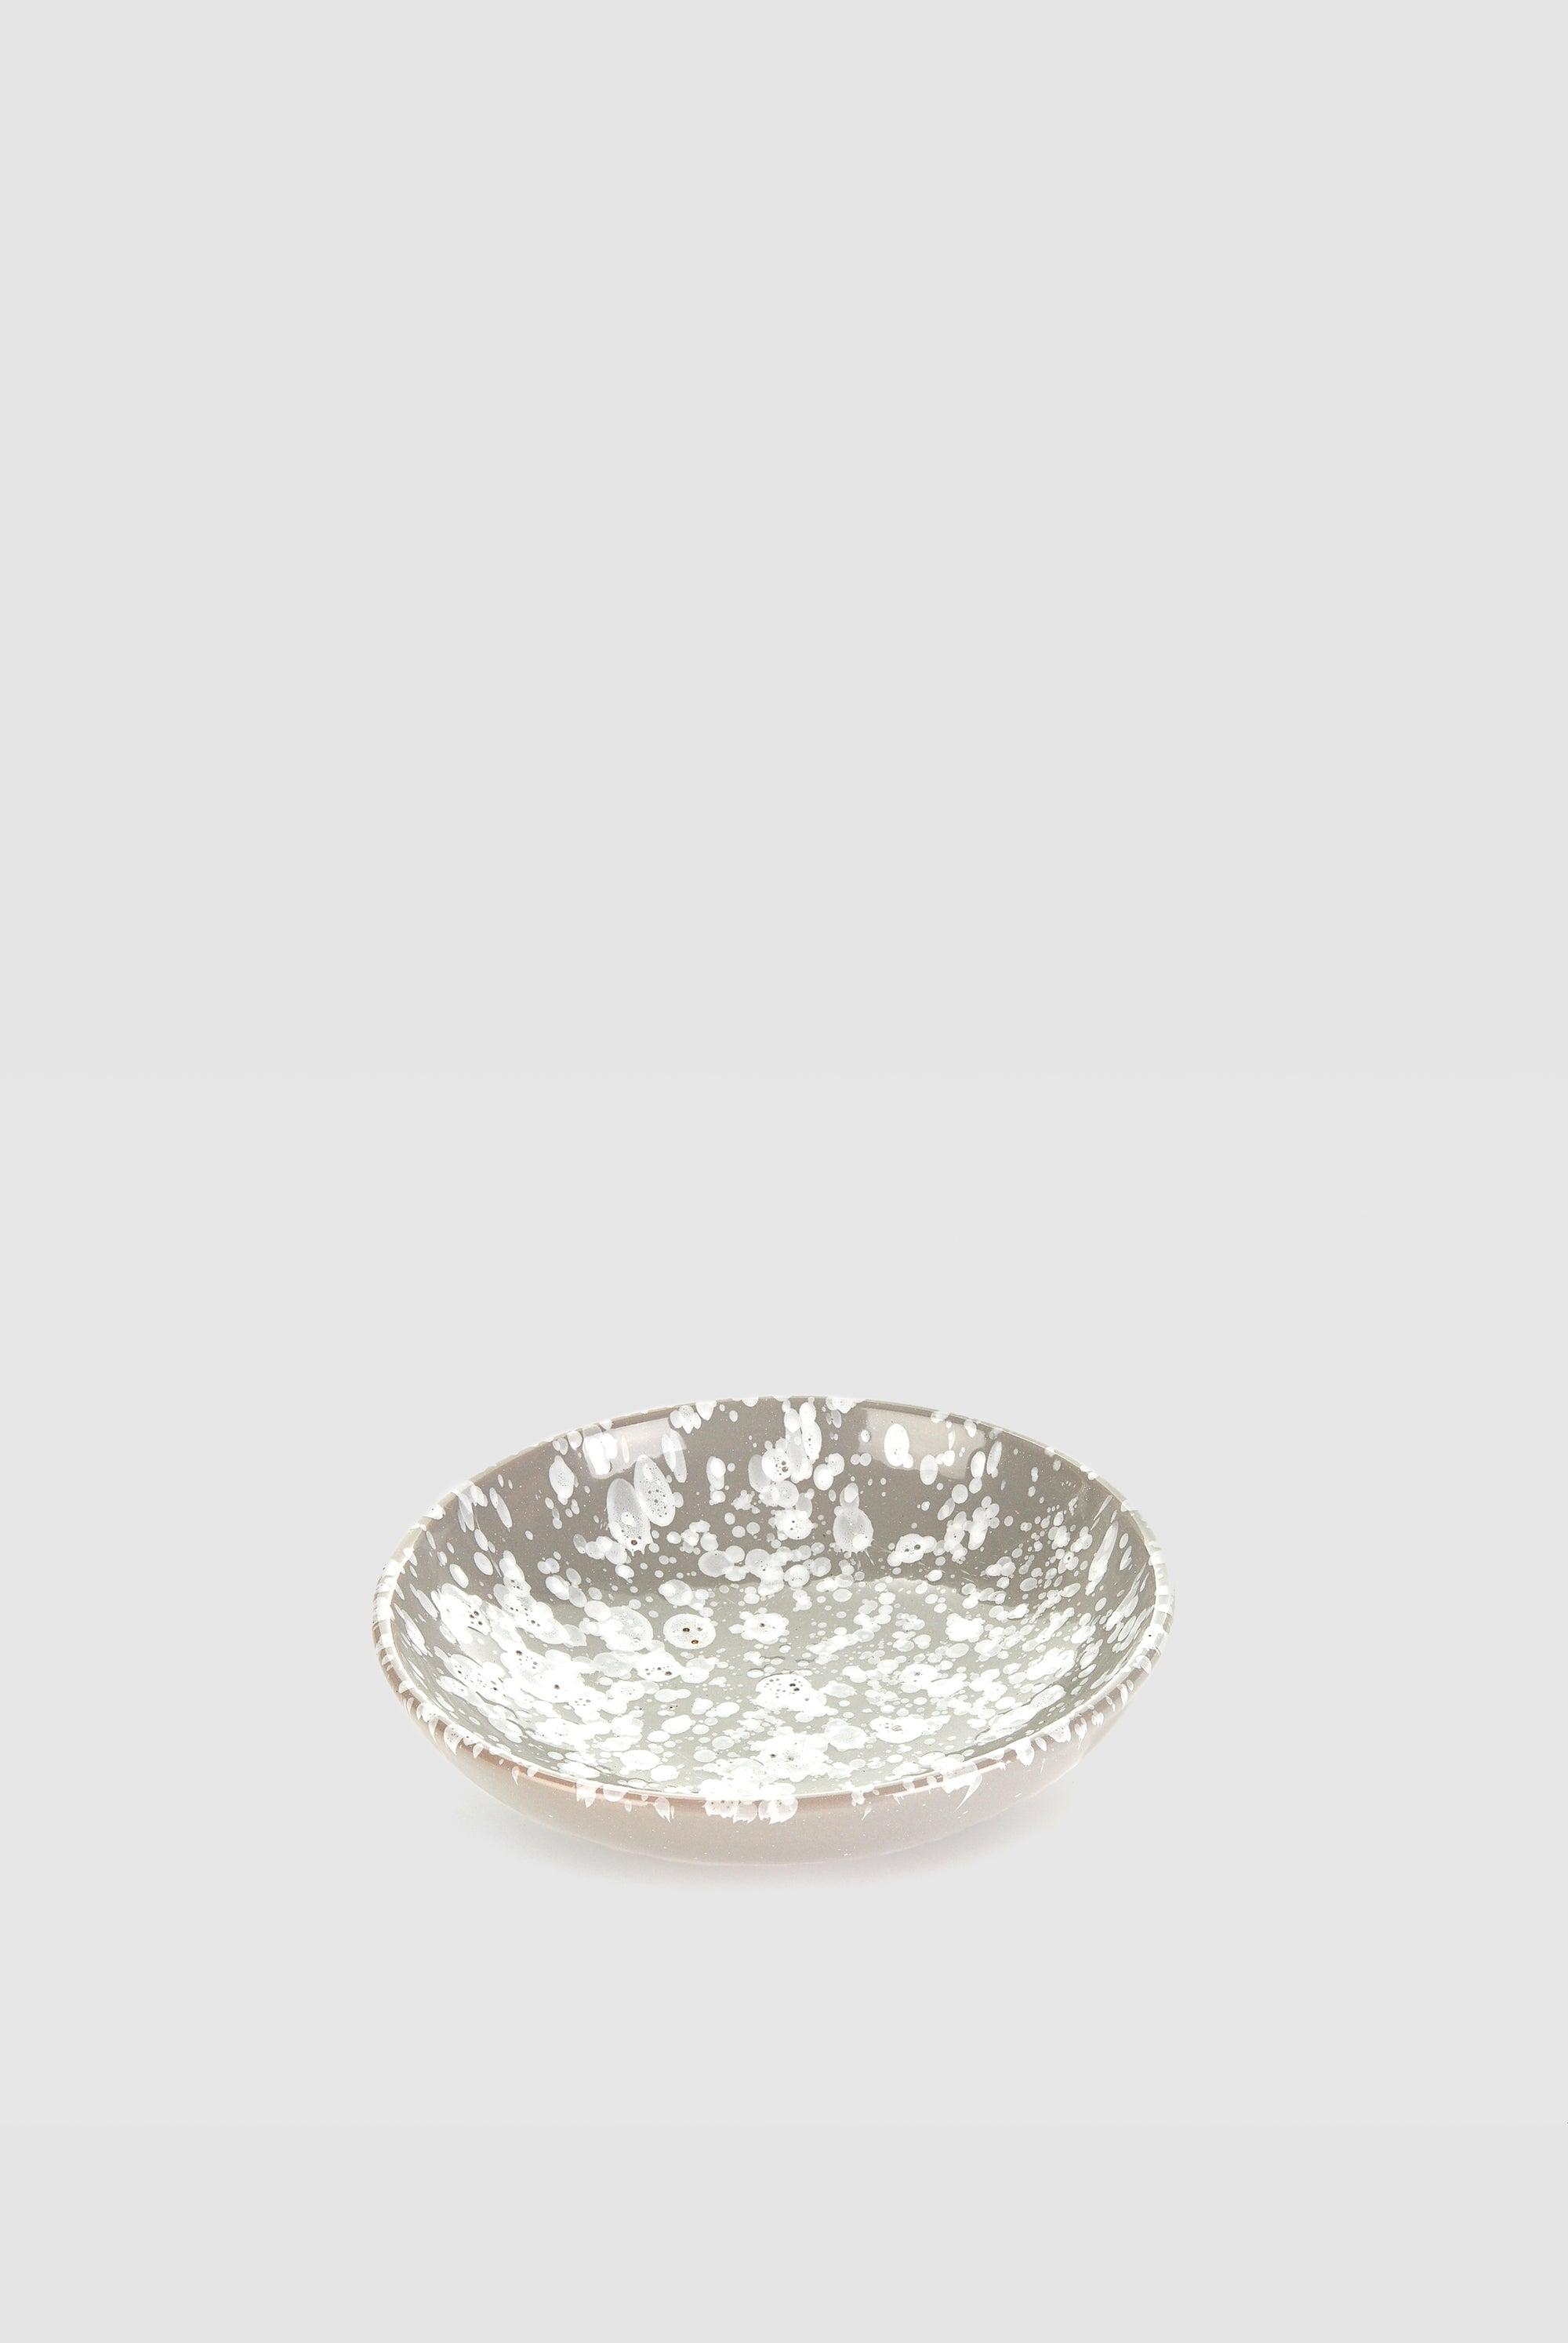 Pasta Bowl - Grey/White